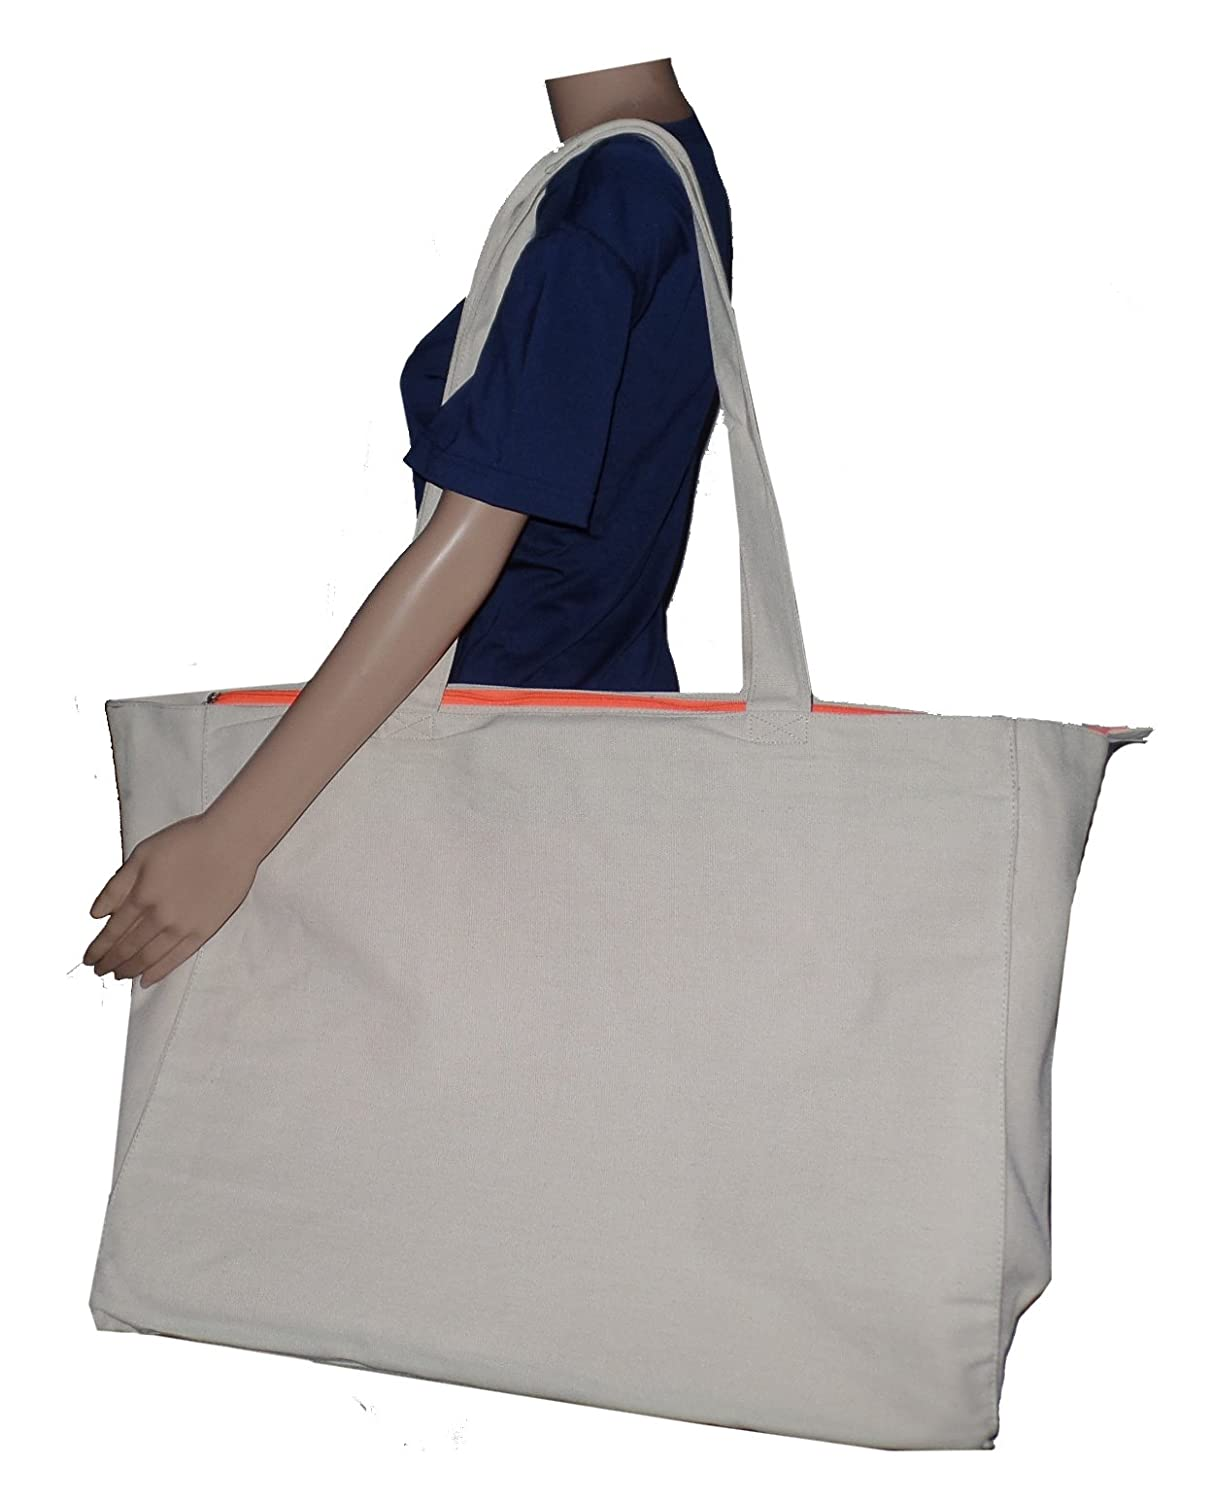 Extra Large Travel Day Tote Bag Heavy Duty Cotton Twill Zip Top (Medium Gray)   Amazon.ca  Luggage   Bags 84b17e8d52d62